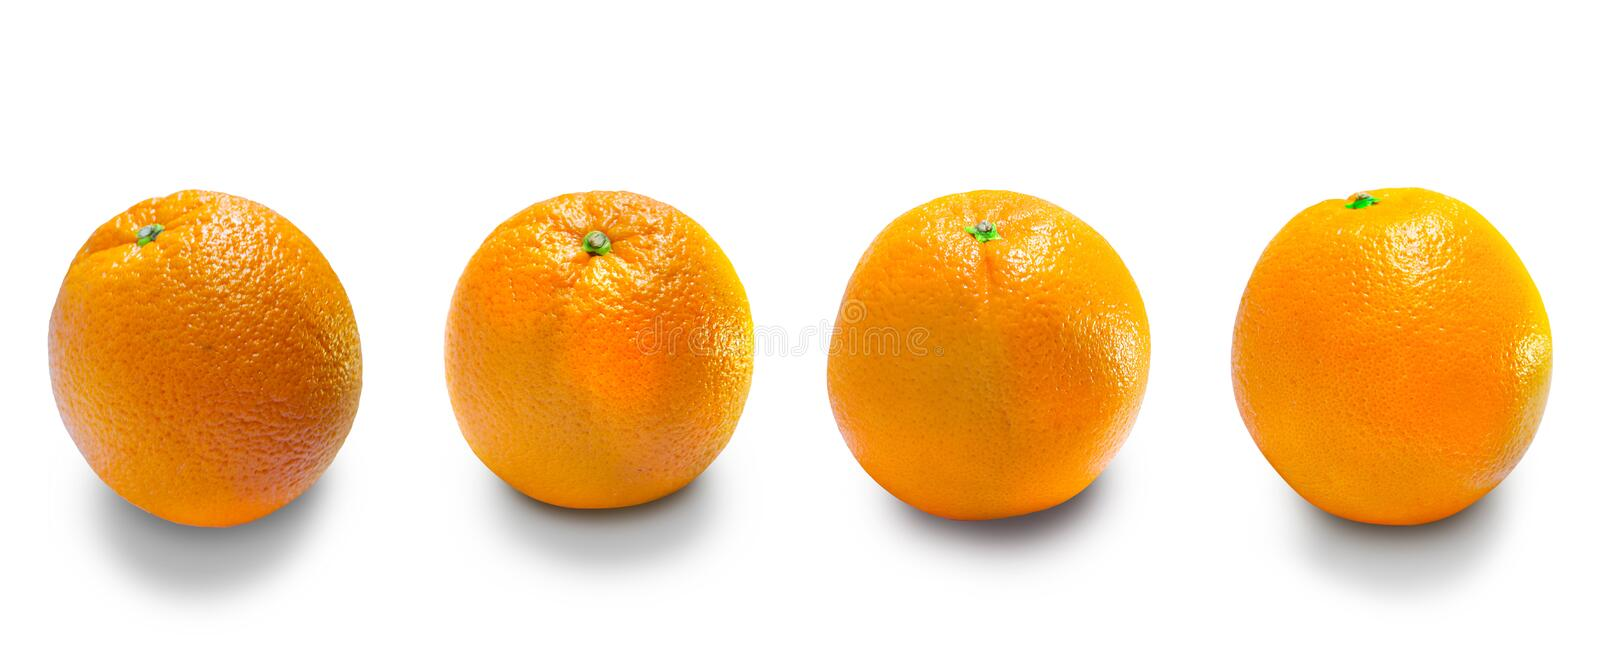 Oranges is the fruit of the citrus stock photo